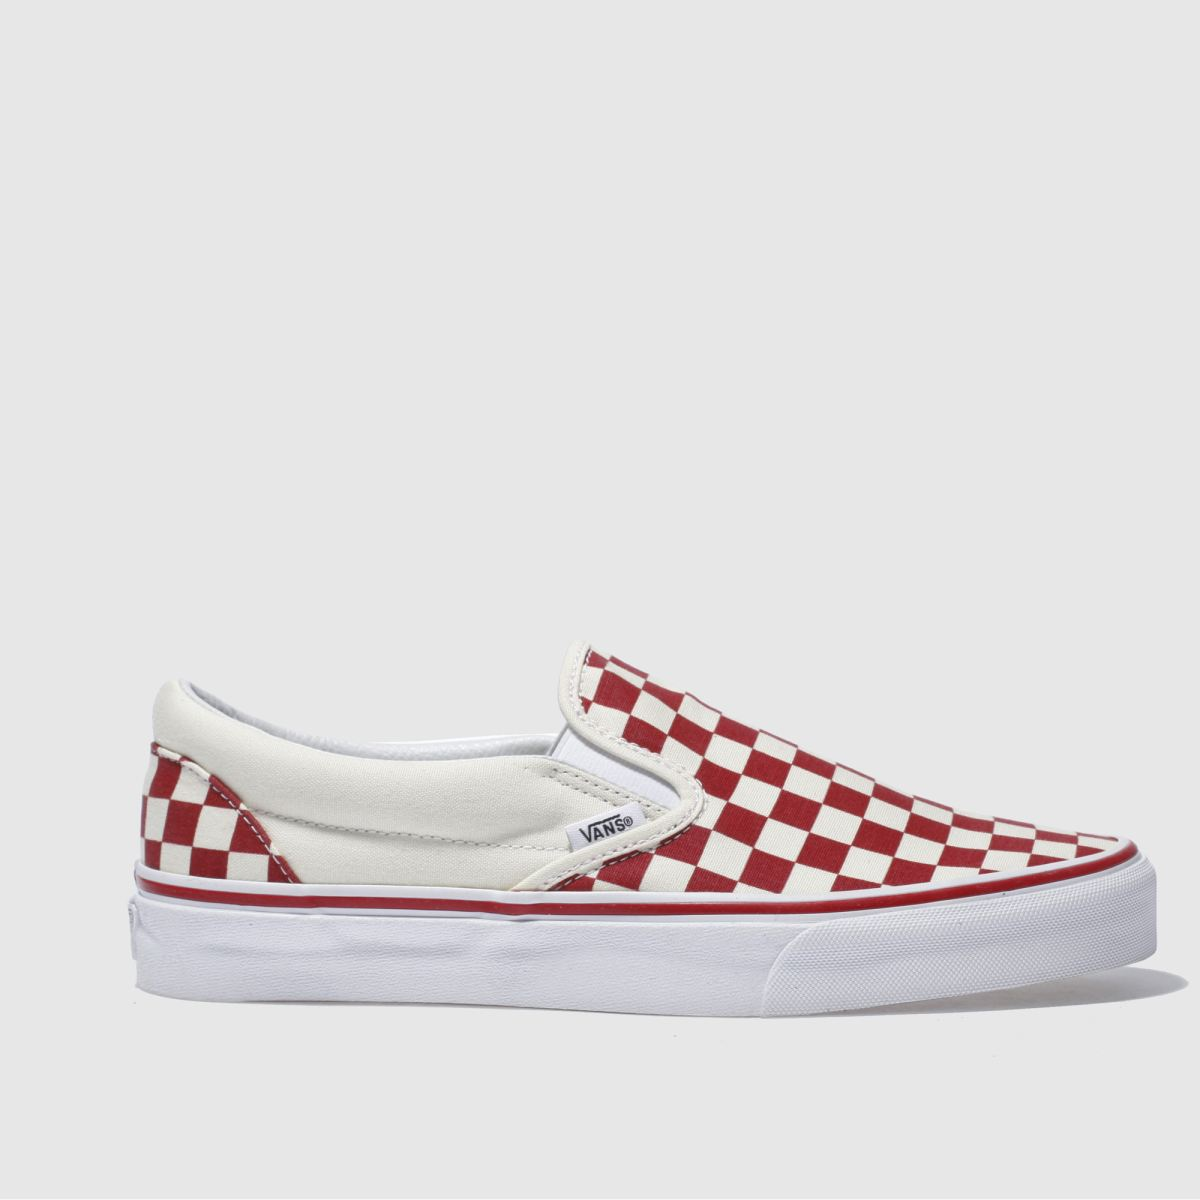 vans red classic slip-on checkerboard trainers